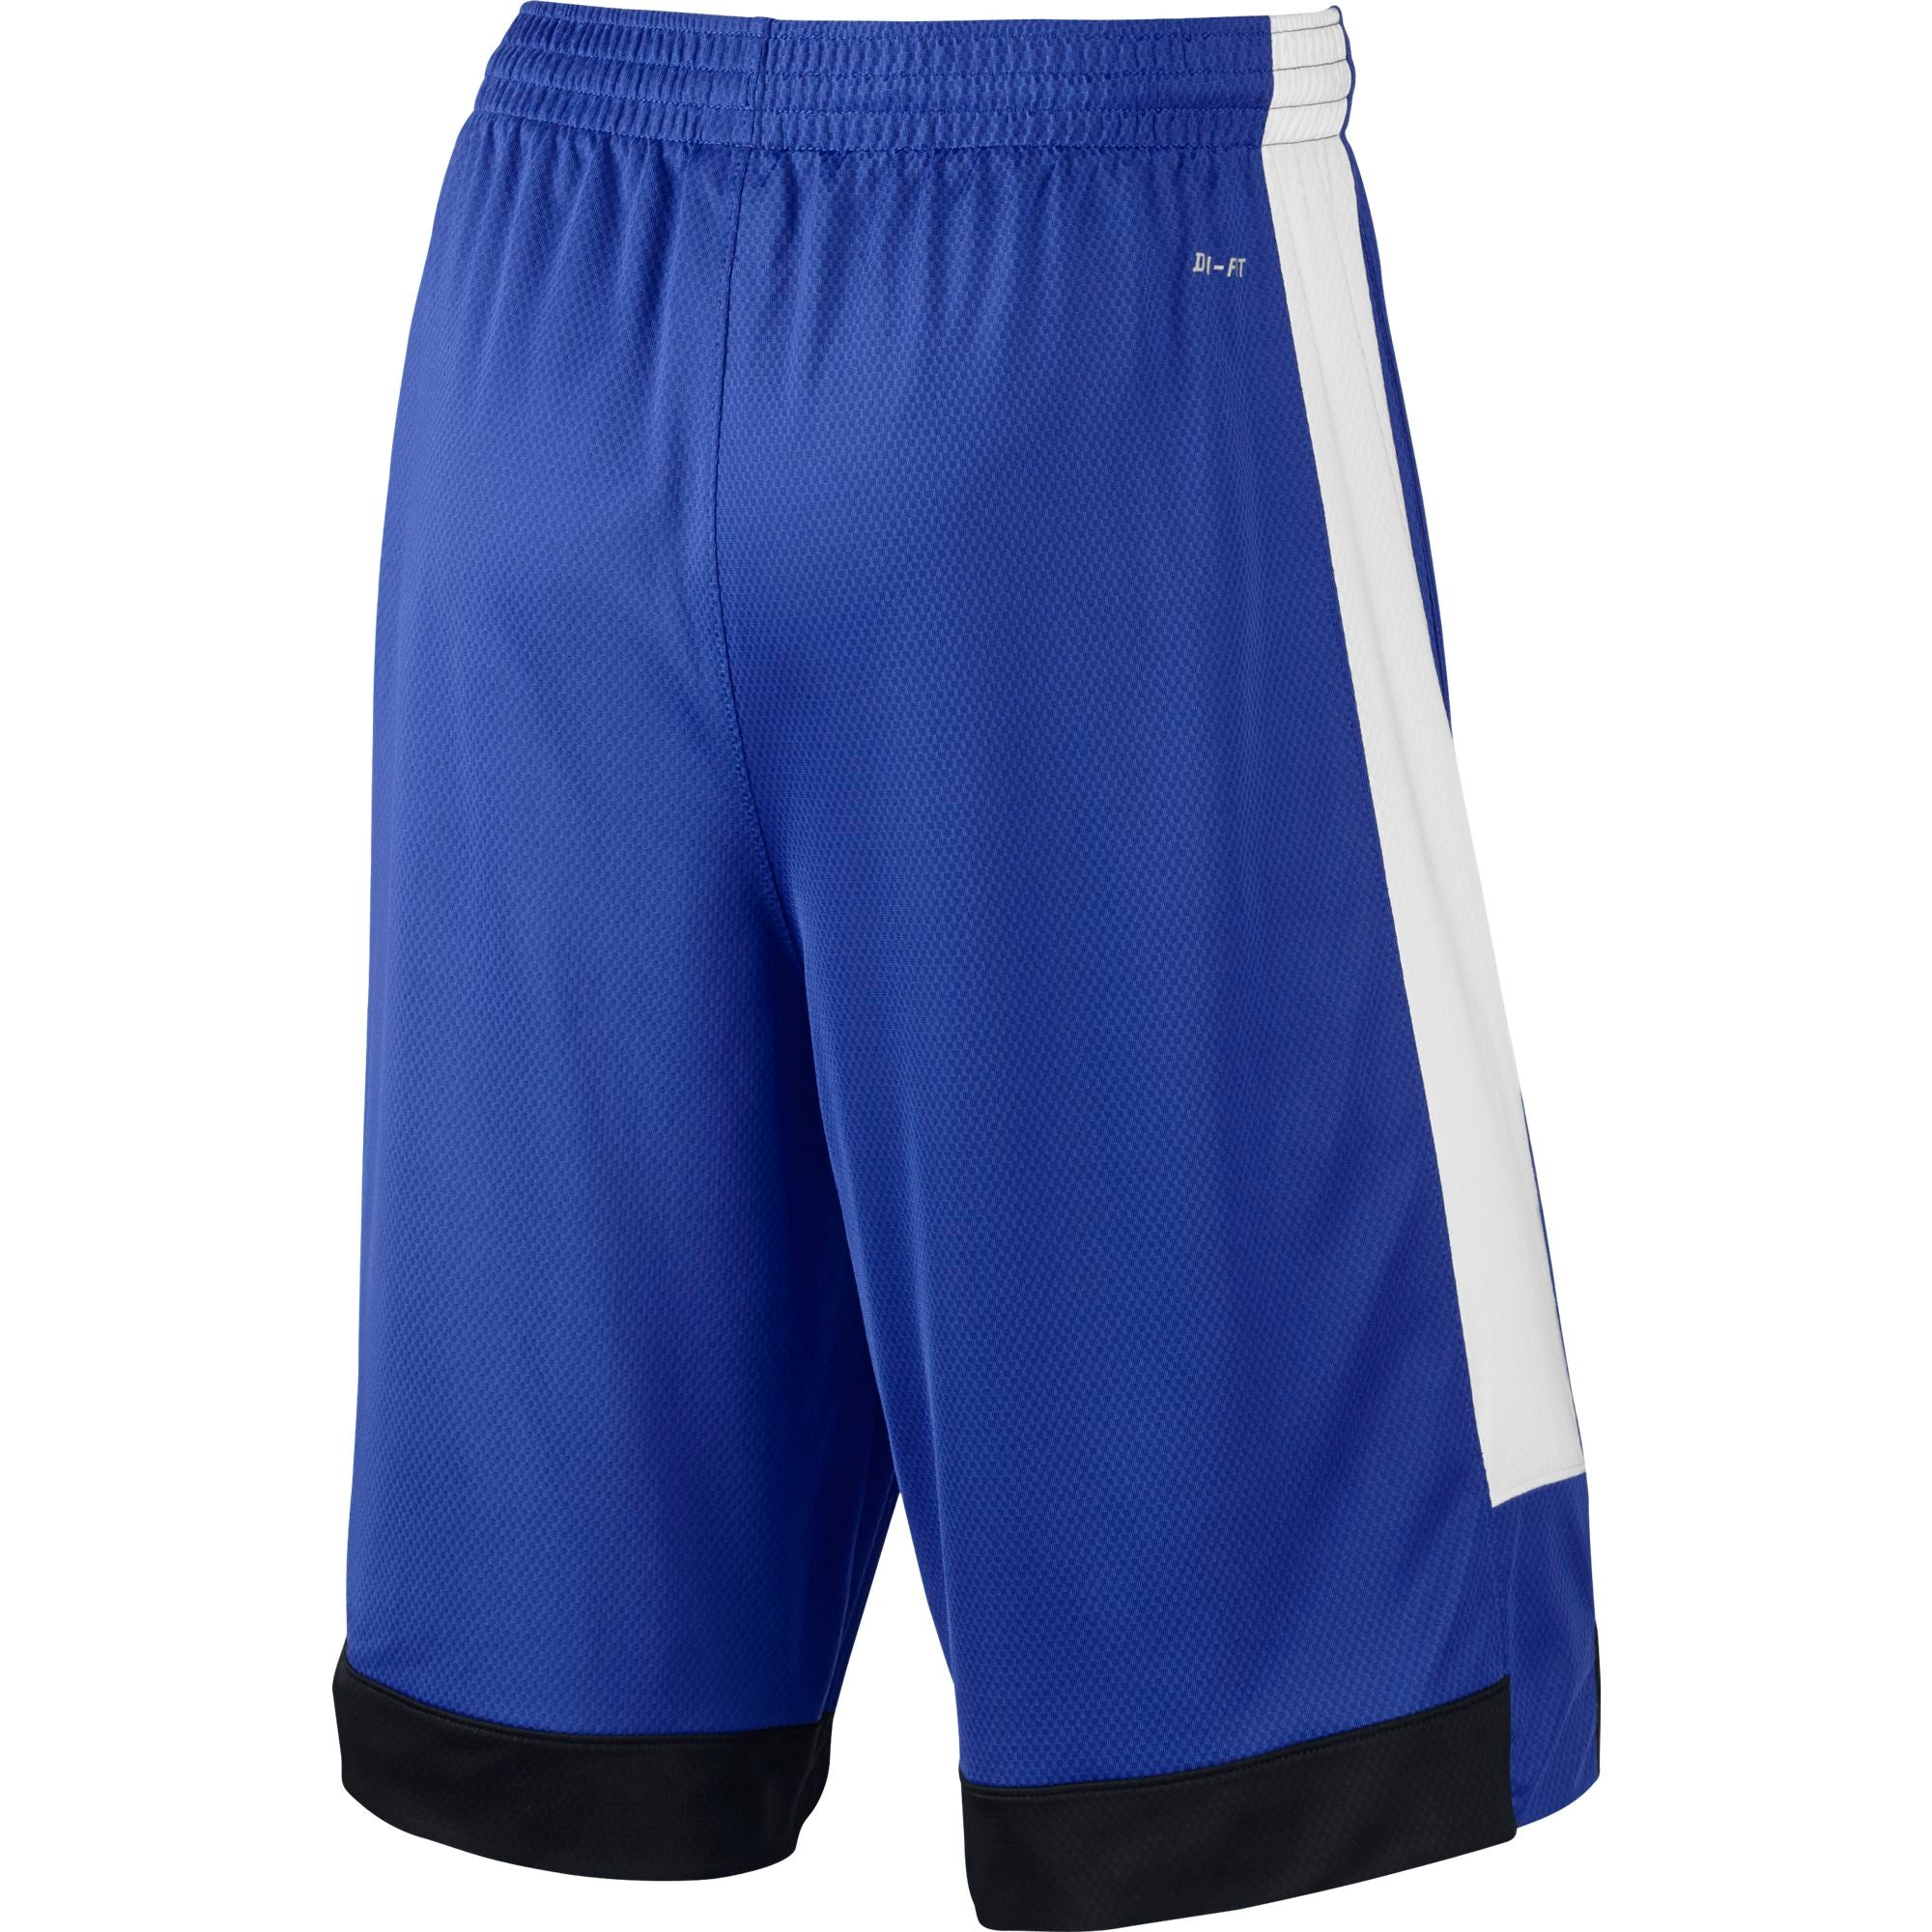 Nike Assist Basketball Shorts - Blue/Black/White